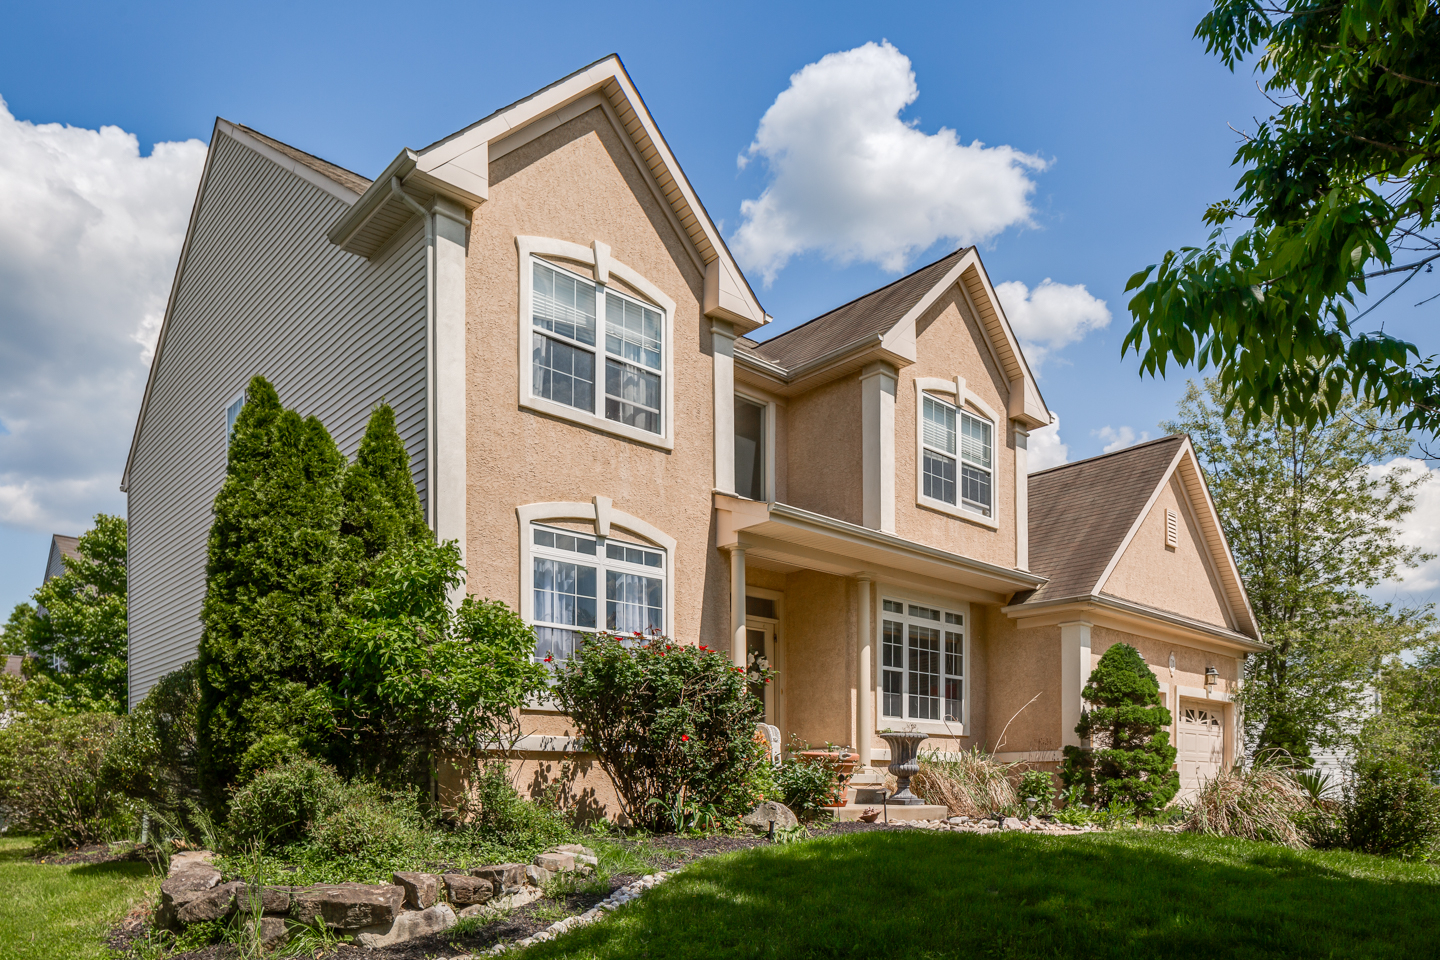 Homes for sale in cherry hill nj